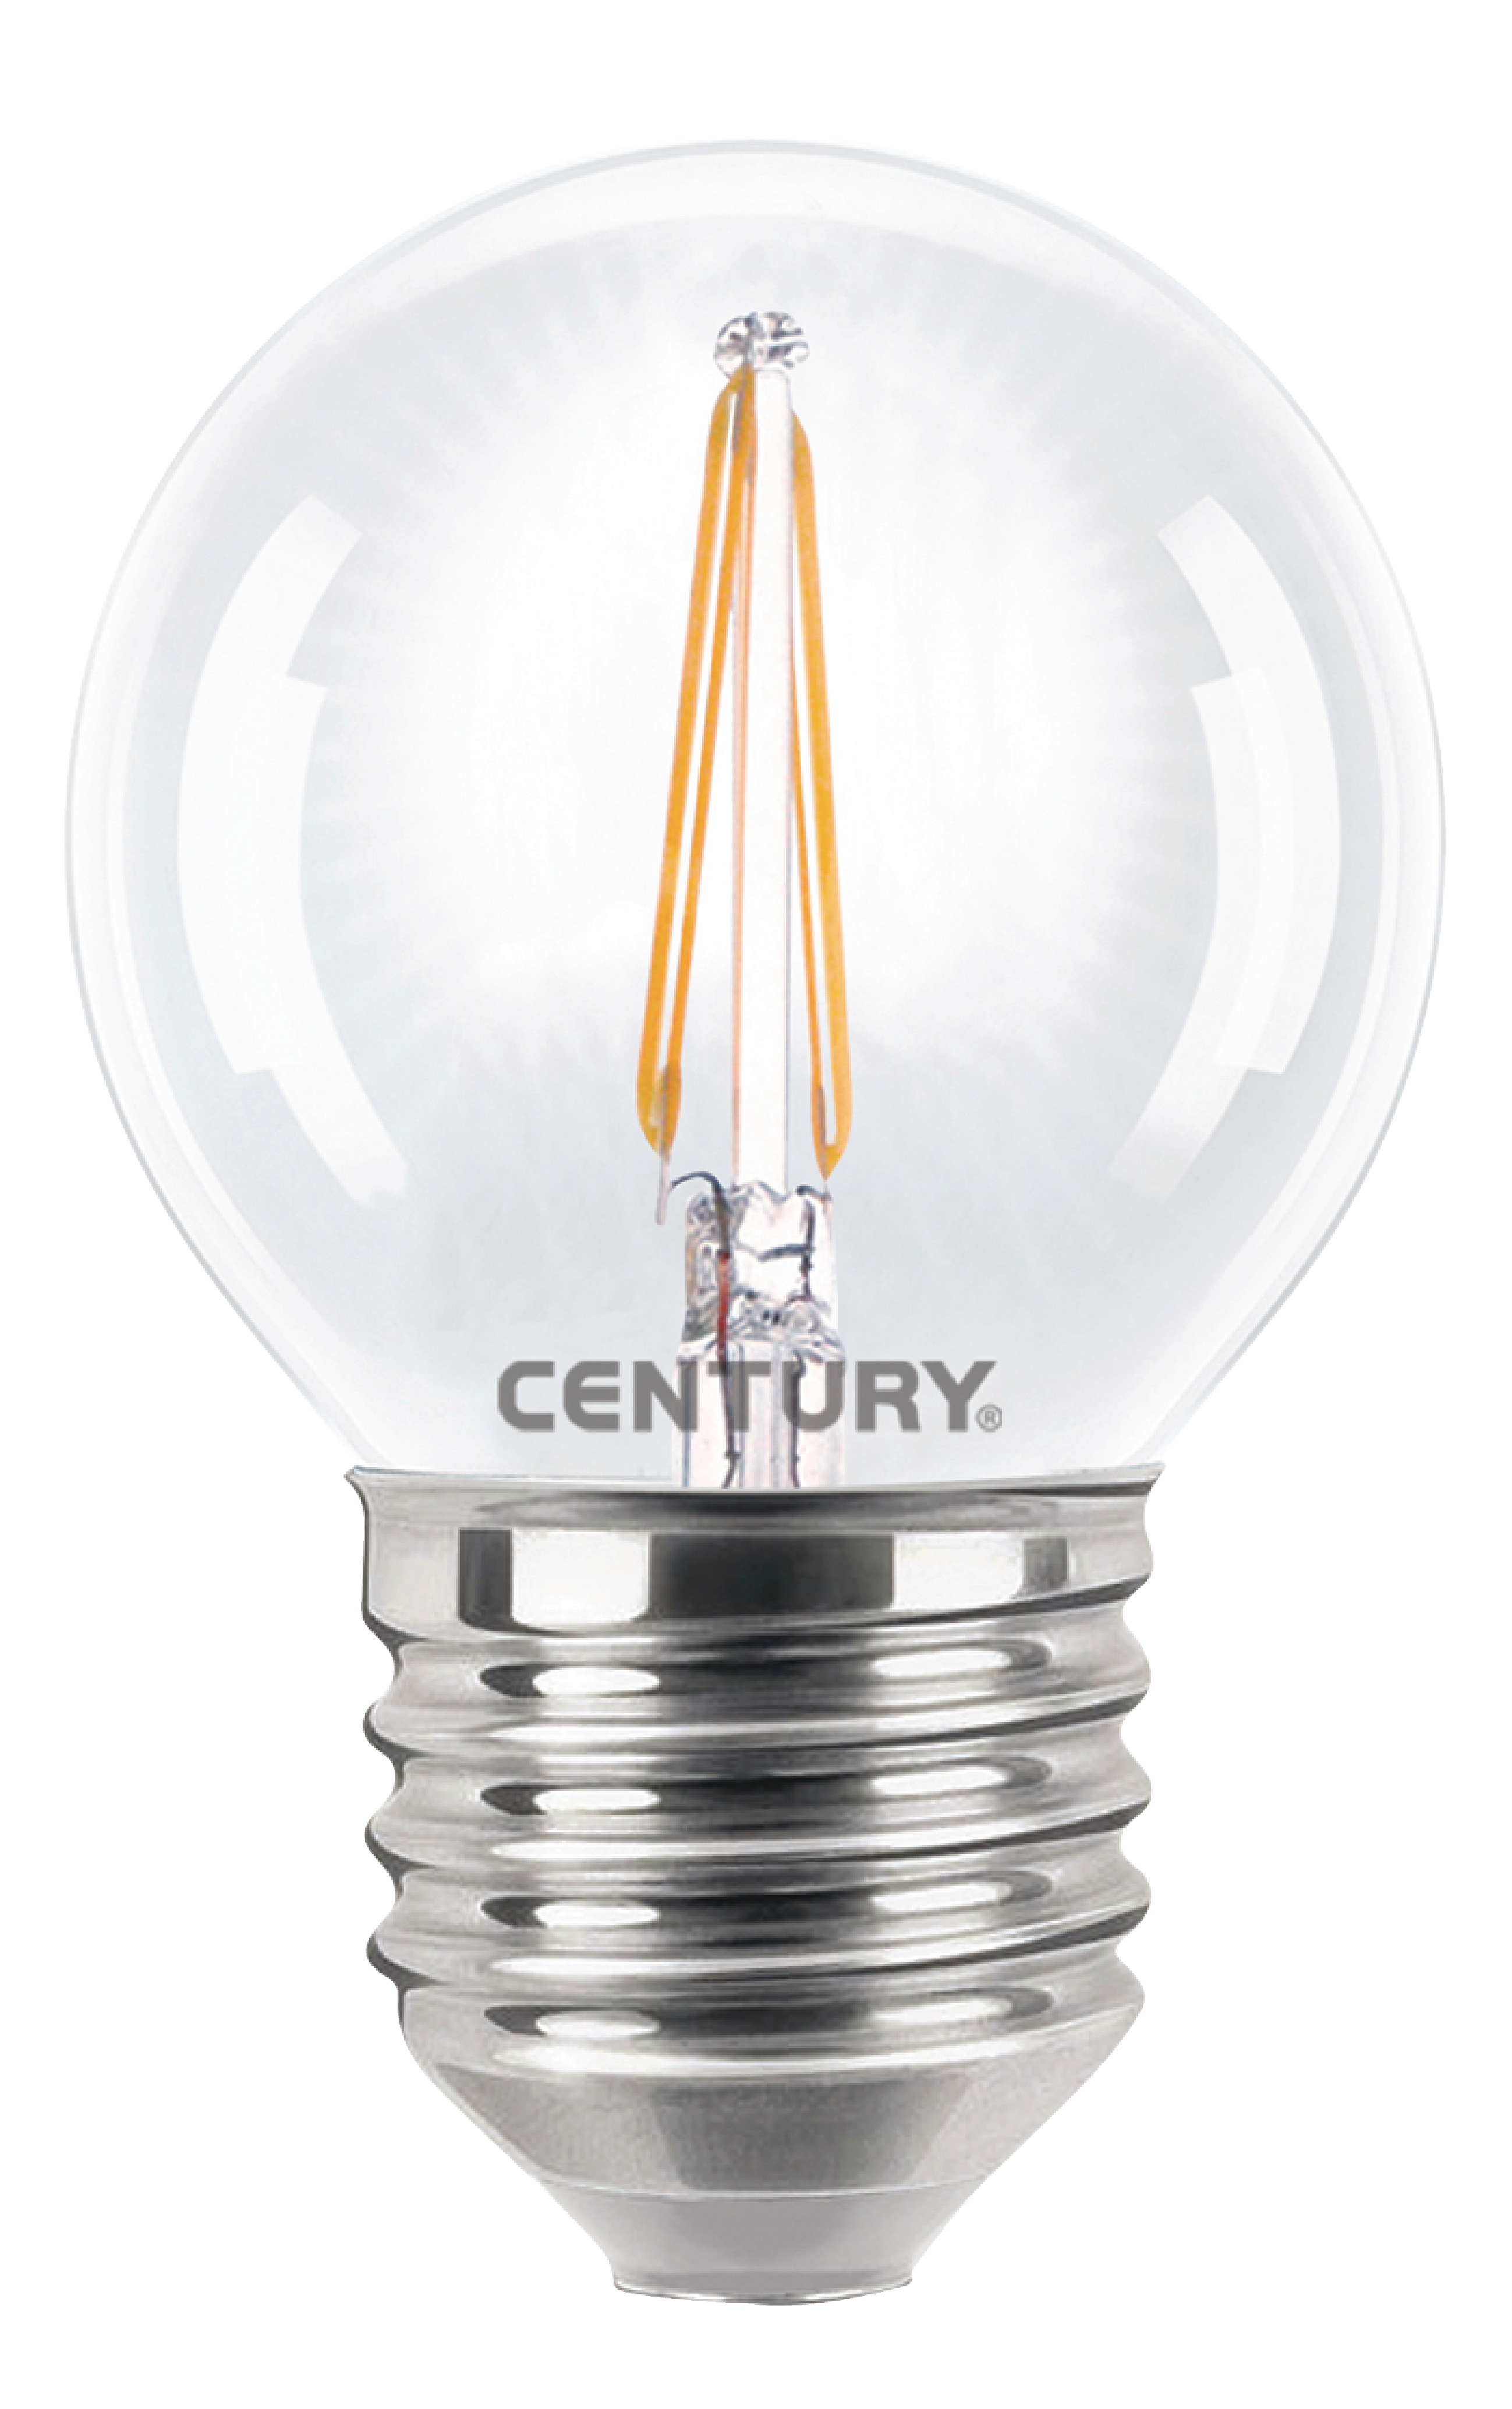 Retro Led E27 Inh1g 042727 Century Led Retro Filament Lamp E27 Mini